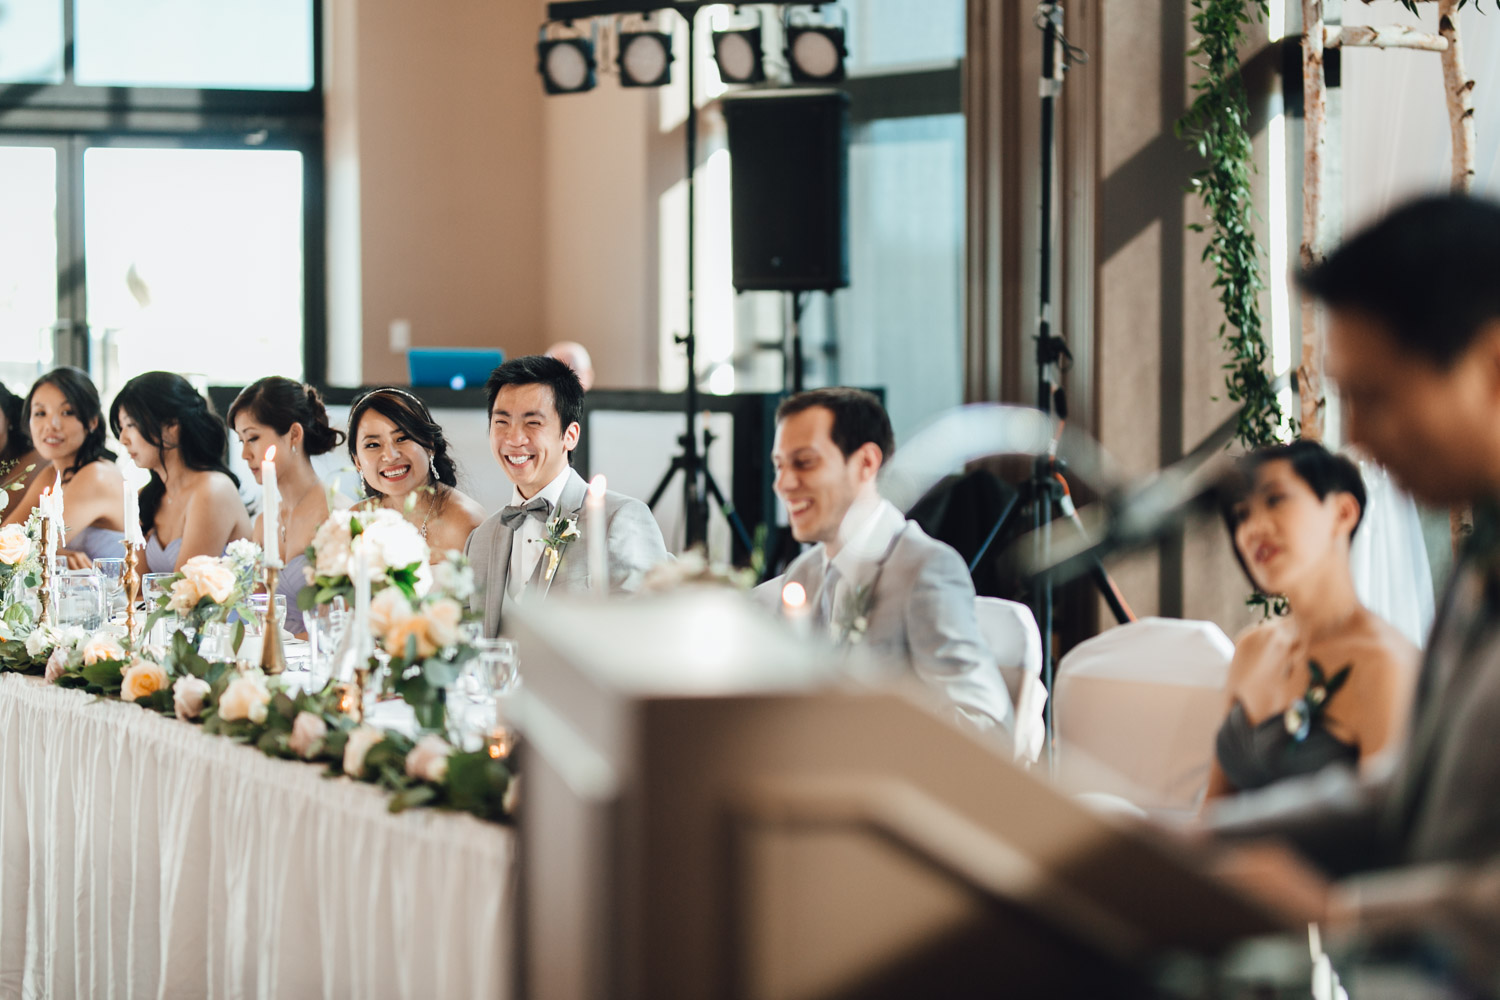 sawneset wedding reception photography in pitt meadows